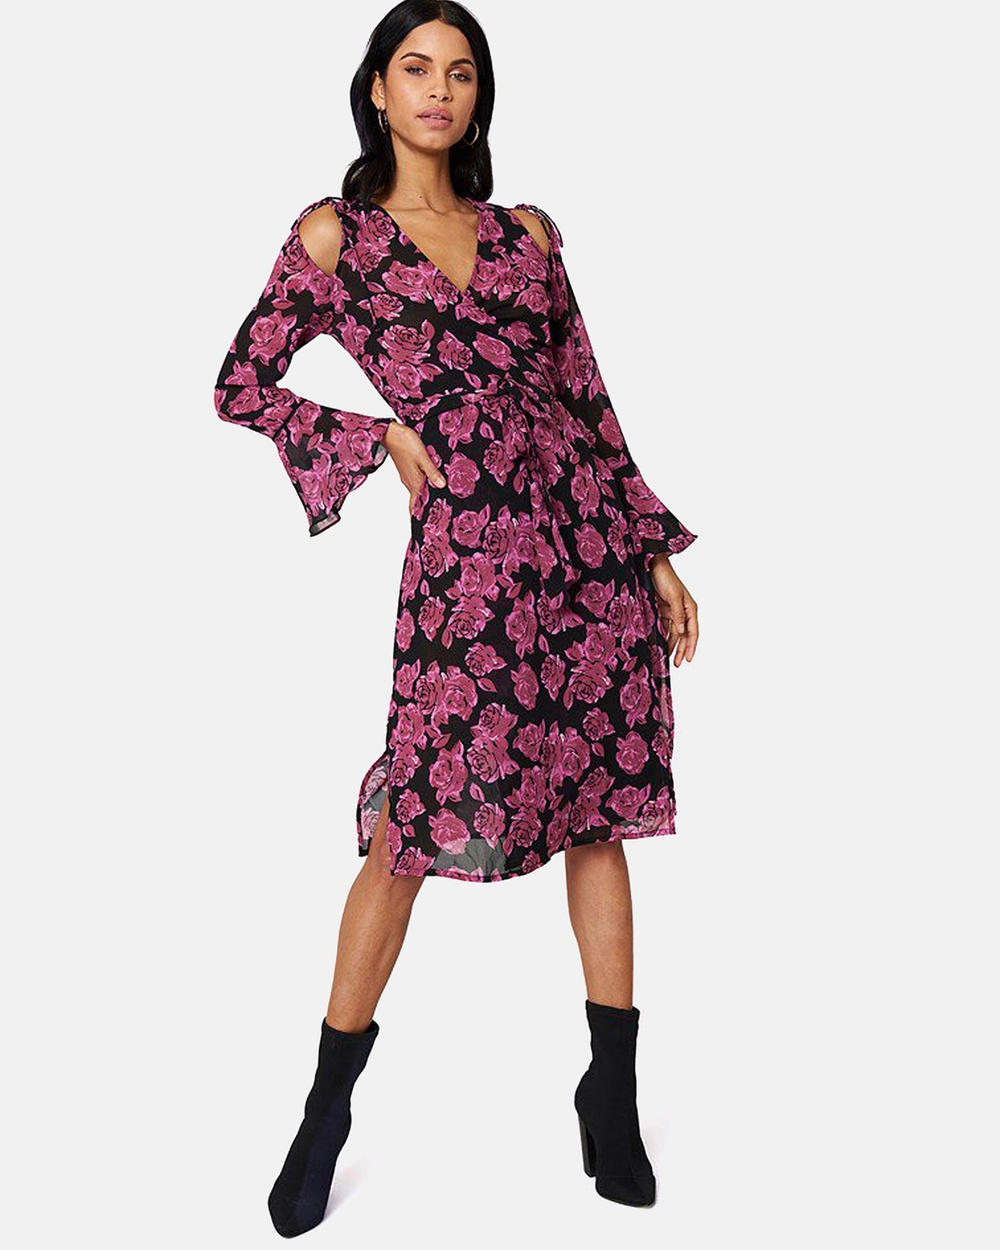 NA-KD Tie Sleeve Caftan Dress Printed Dresses Burgundy Roses Tie Sleeve Caftan Dress